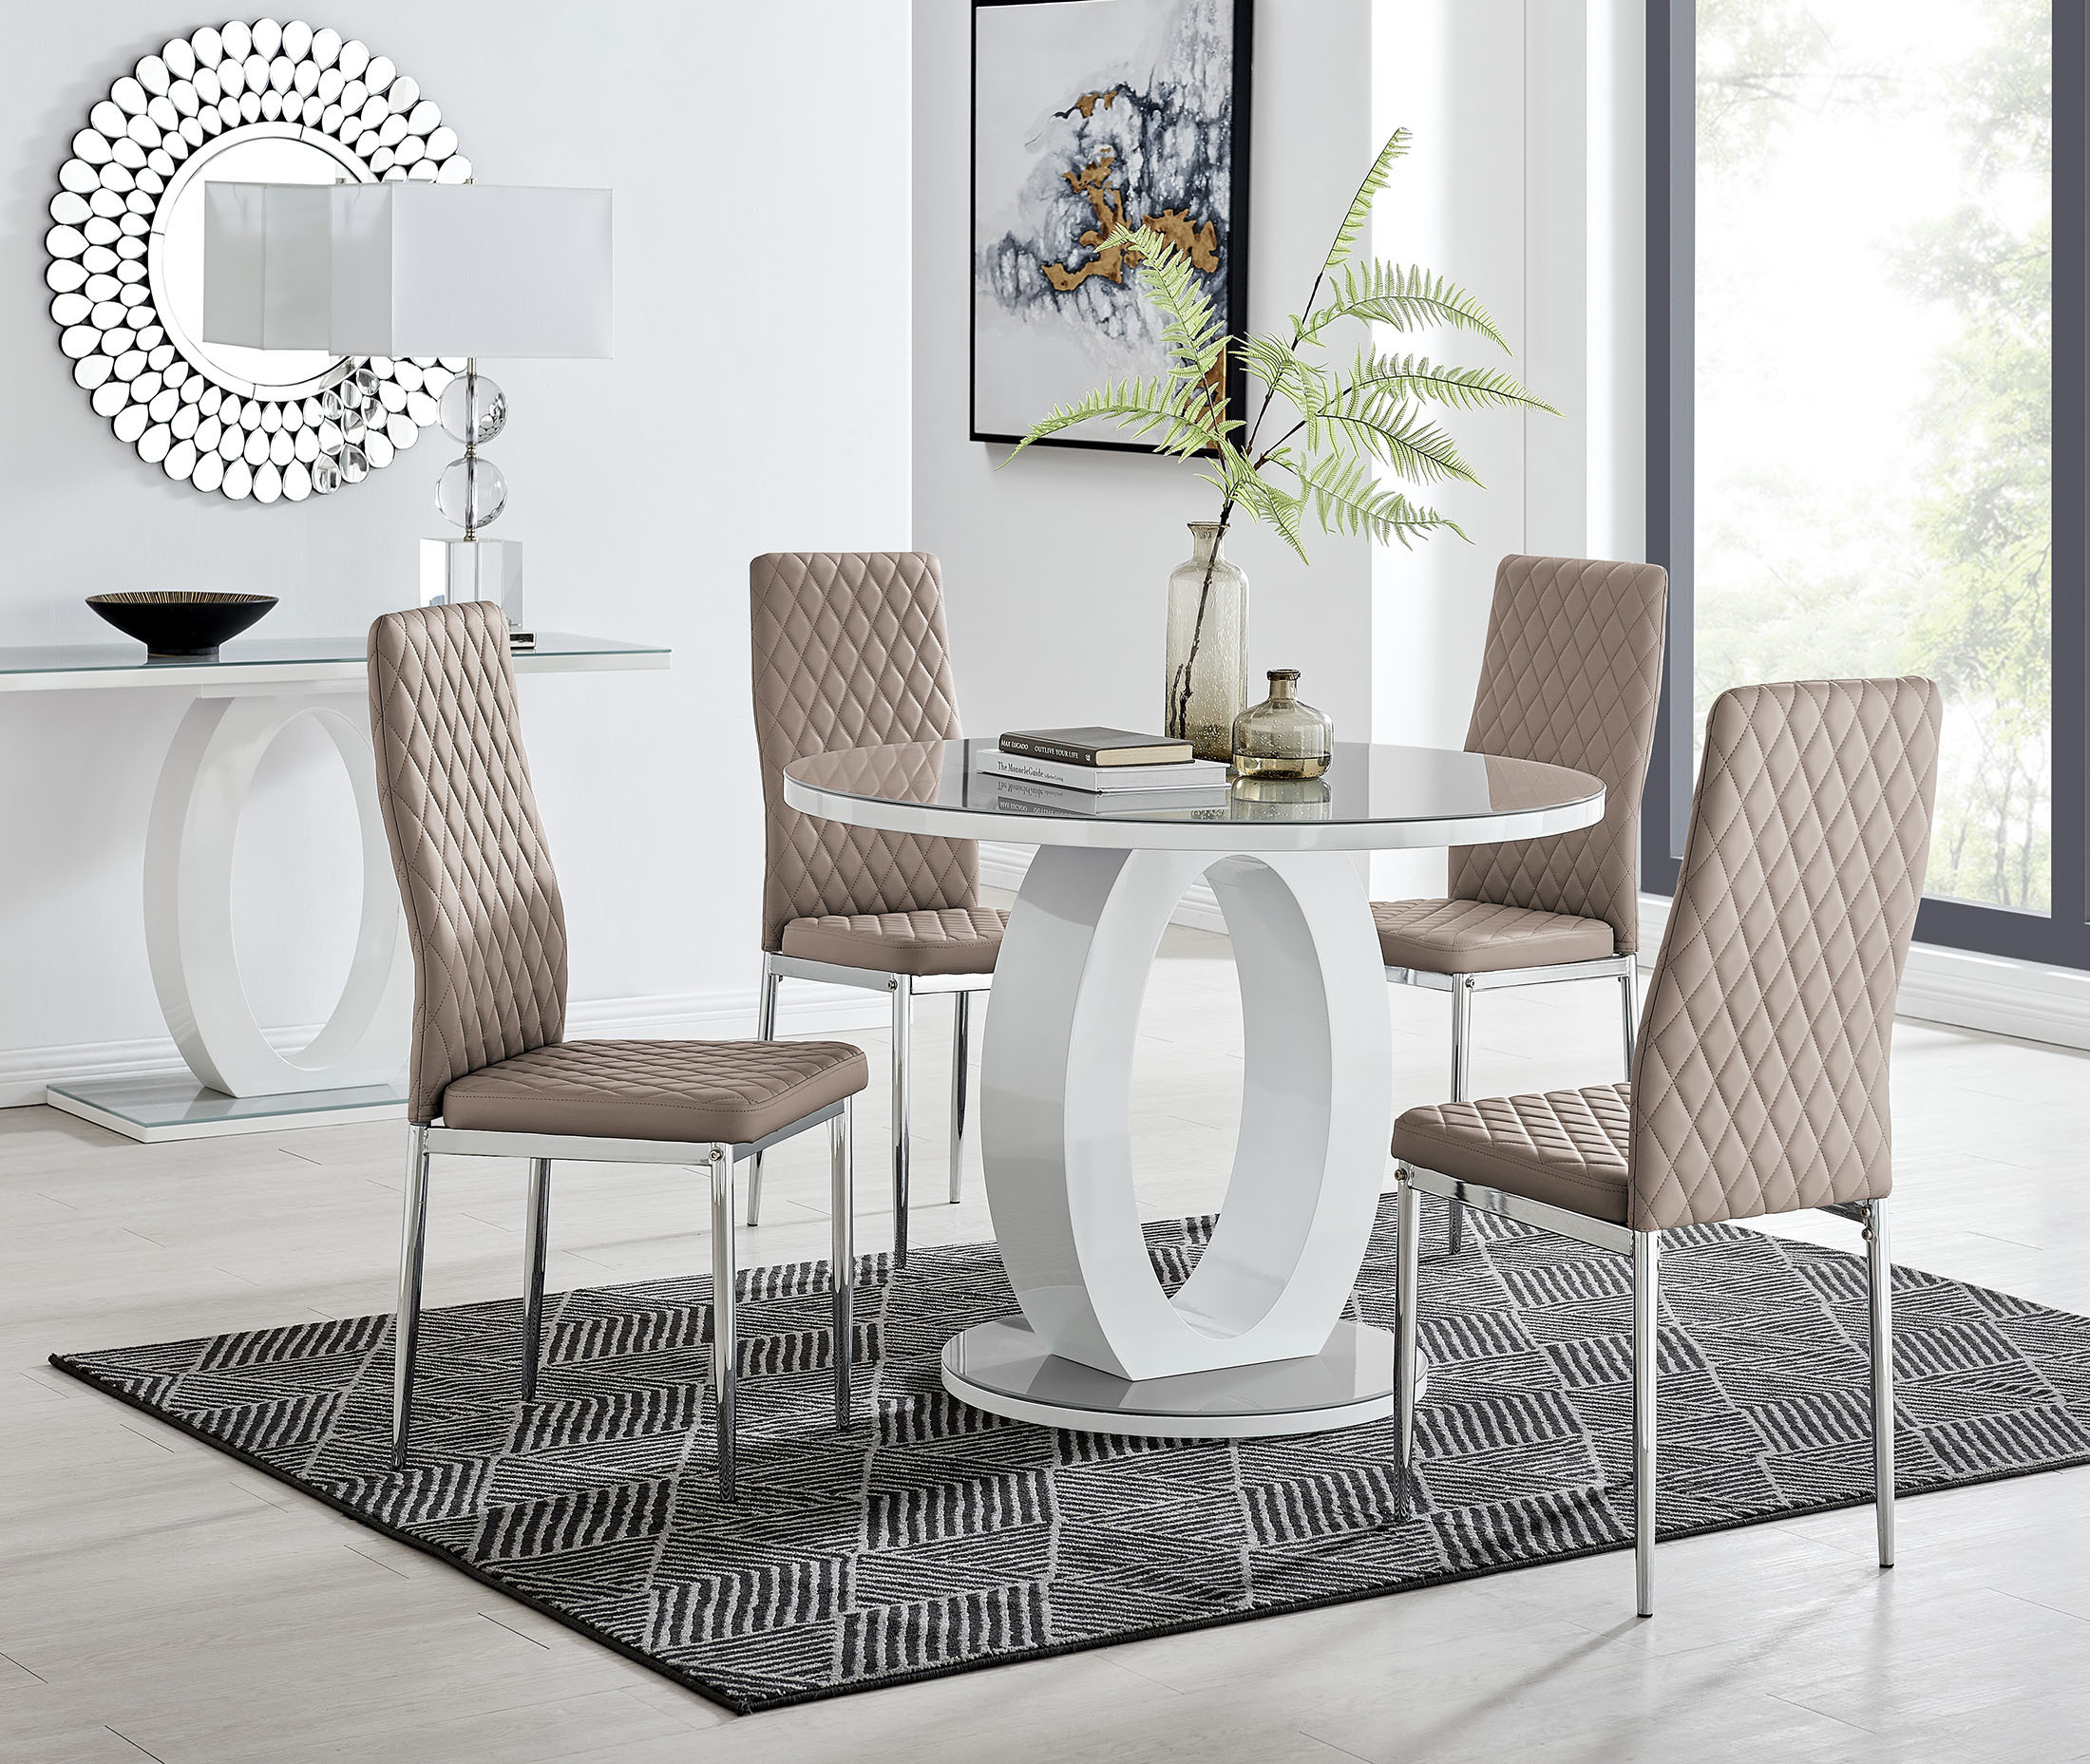 Grey White Round Gloss Dining Table, Dining Room Sets 4 Chairs